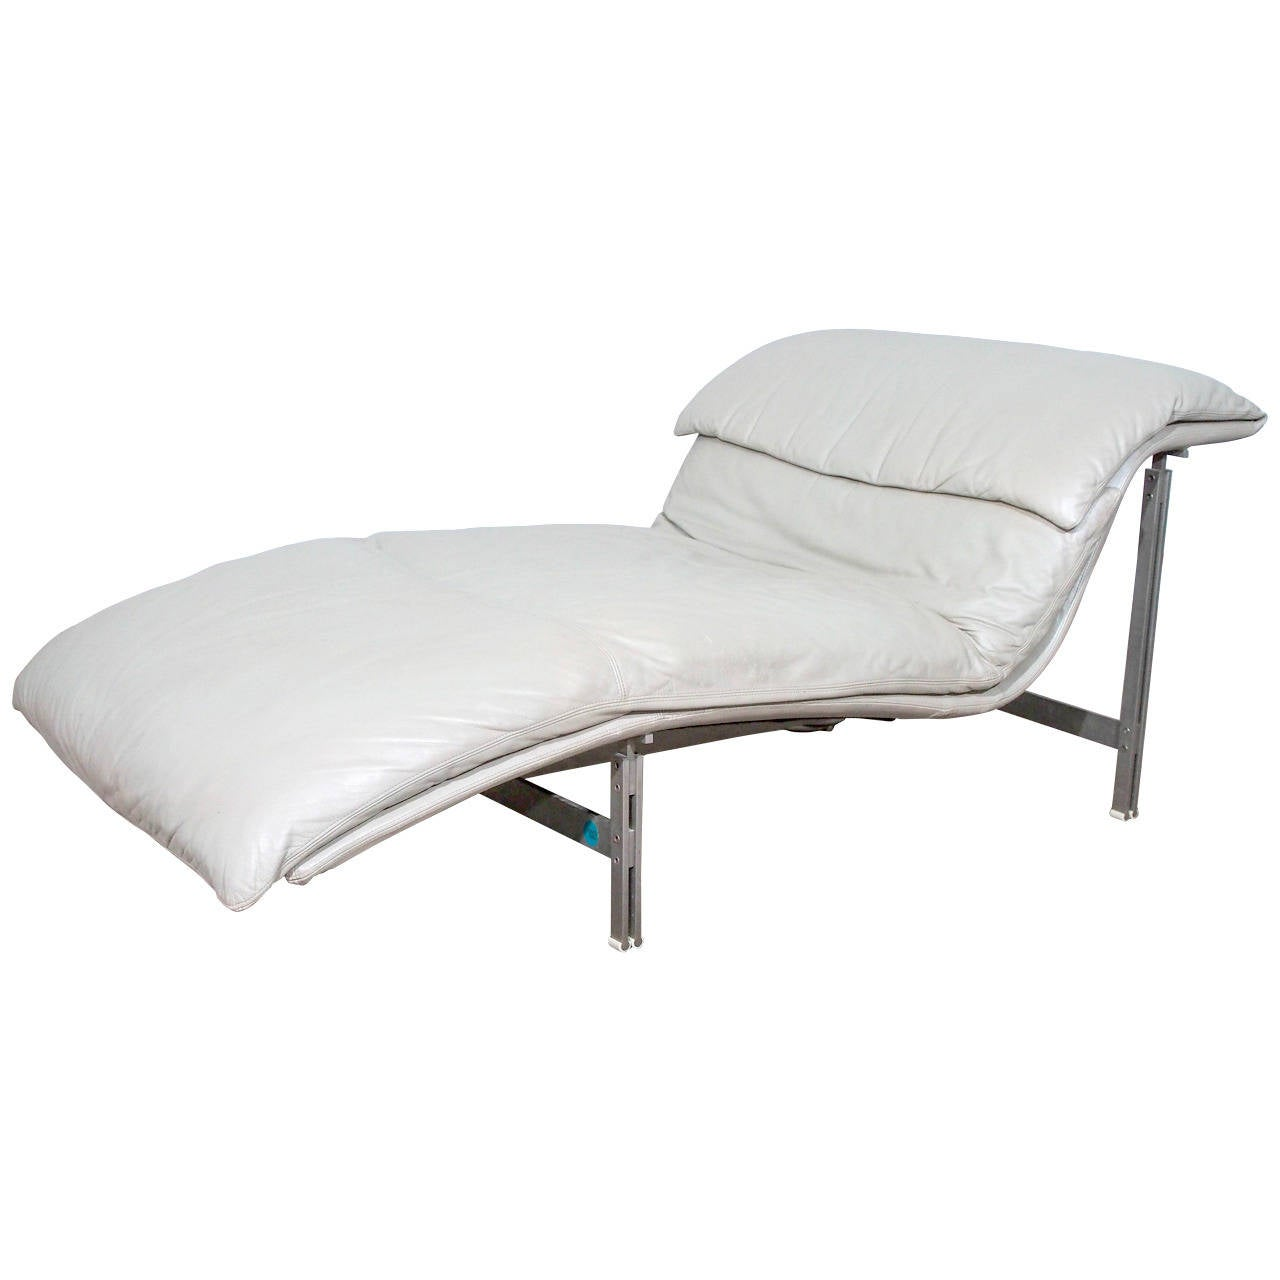 Leather wave chaise longue chair by giovanni offredi for saporiti signed at 1stdibs for Modern leather chaise longue